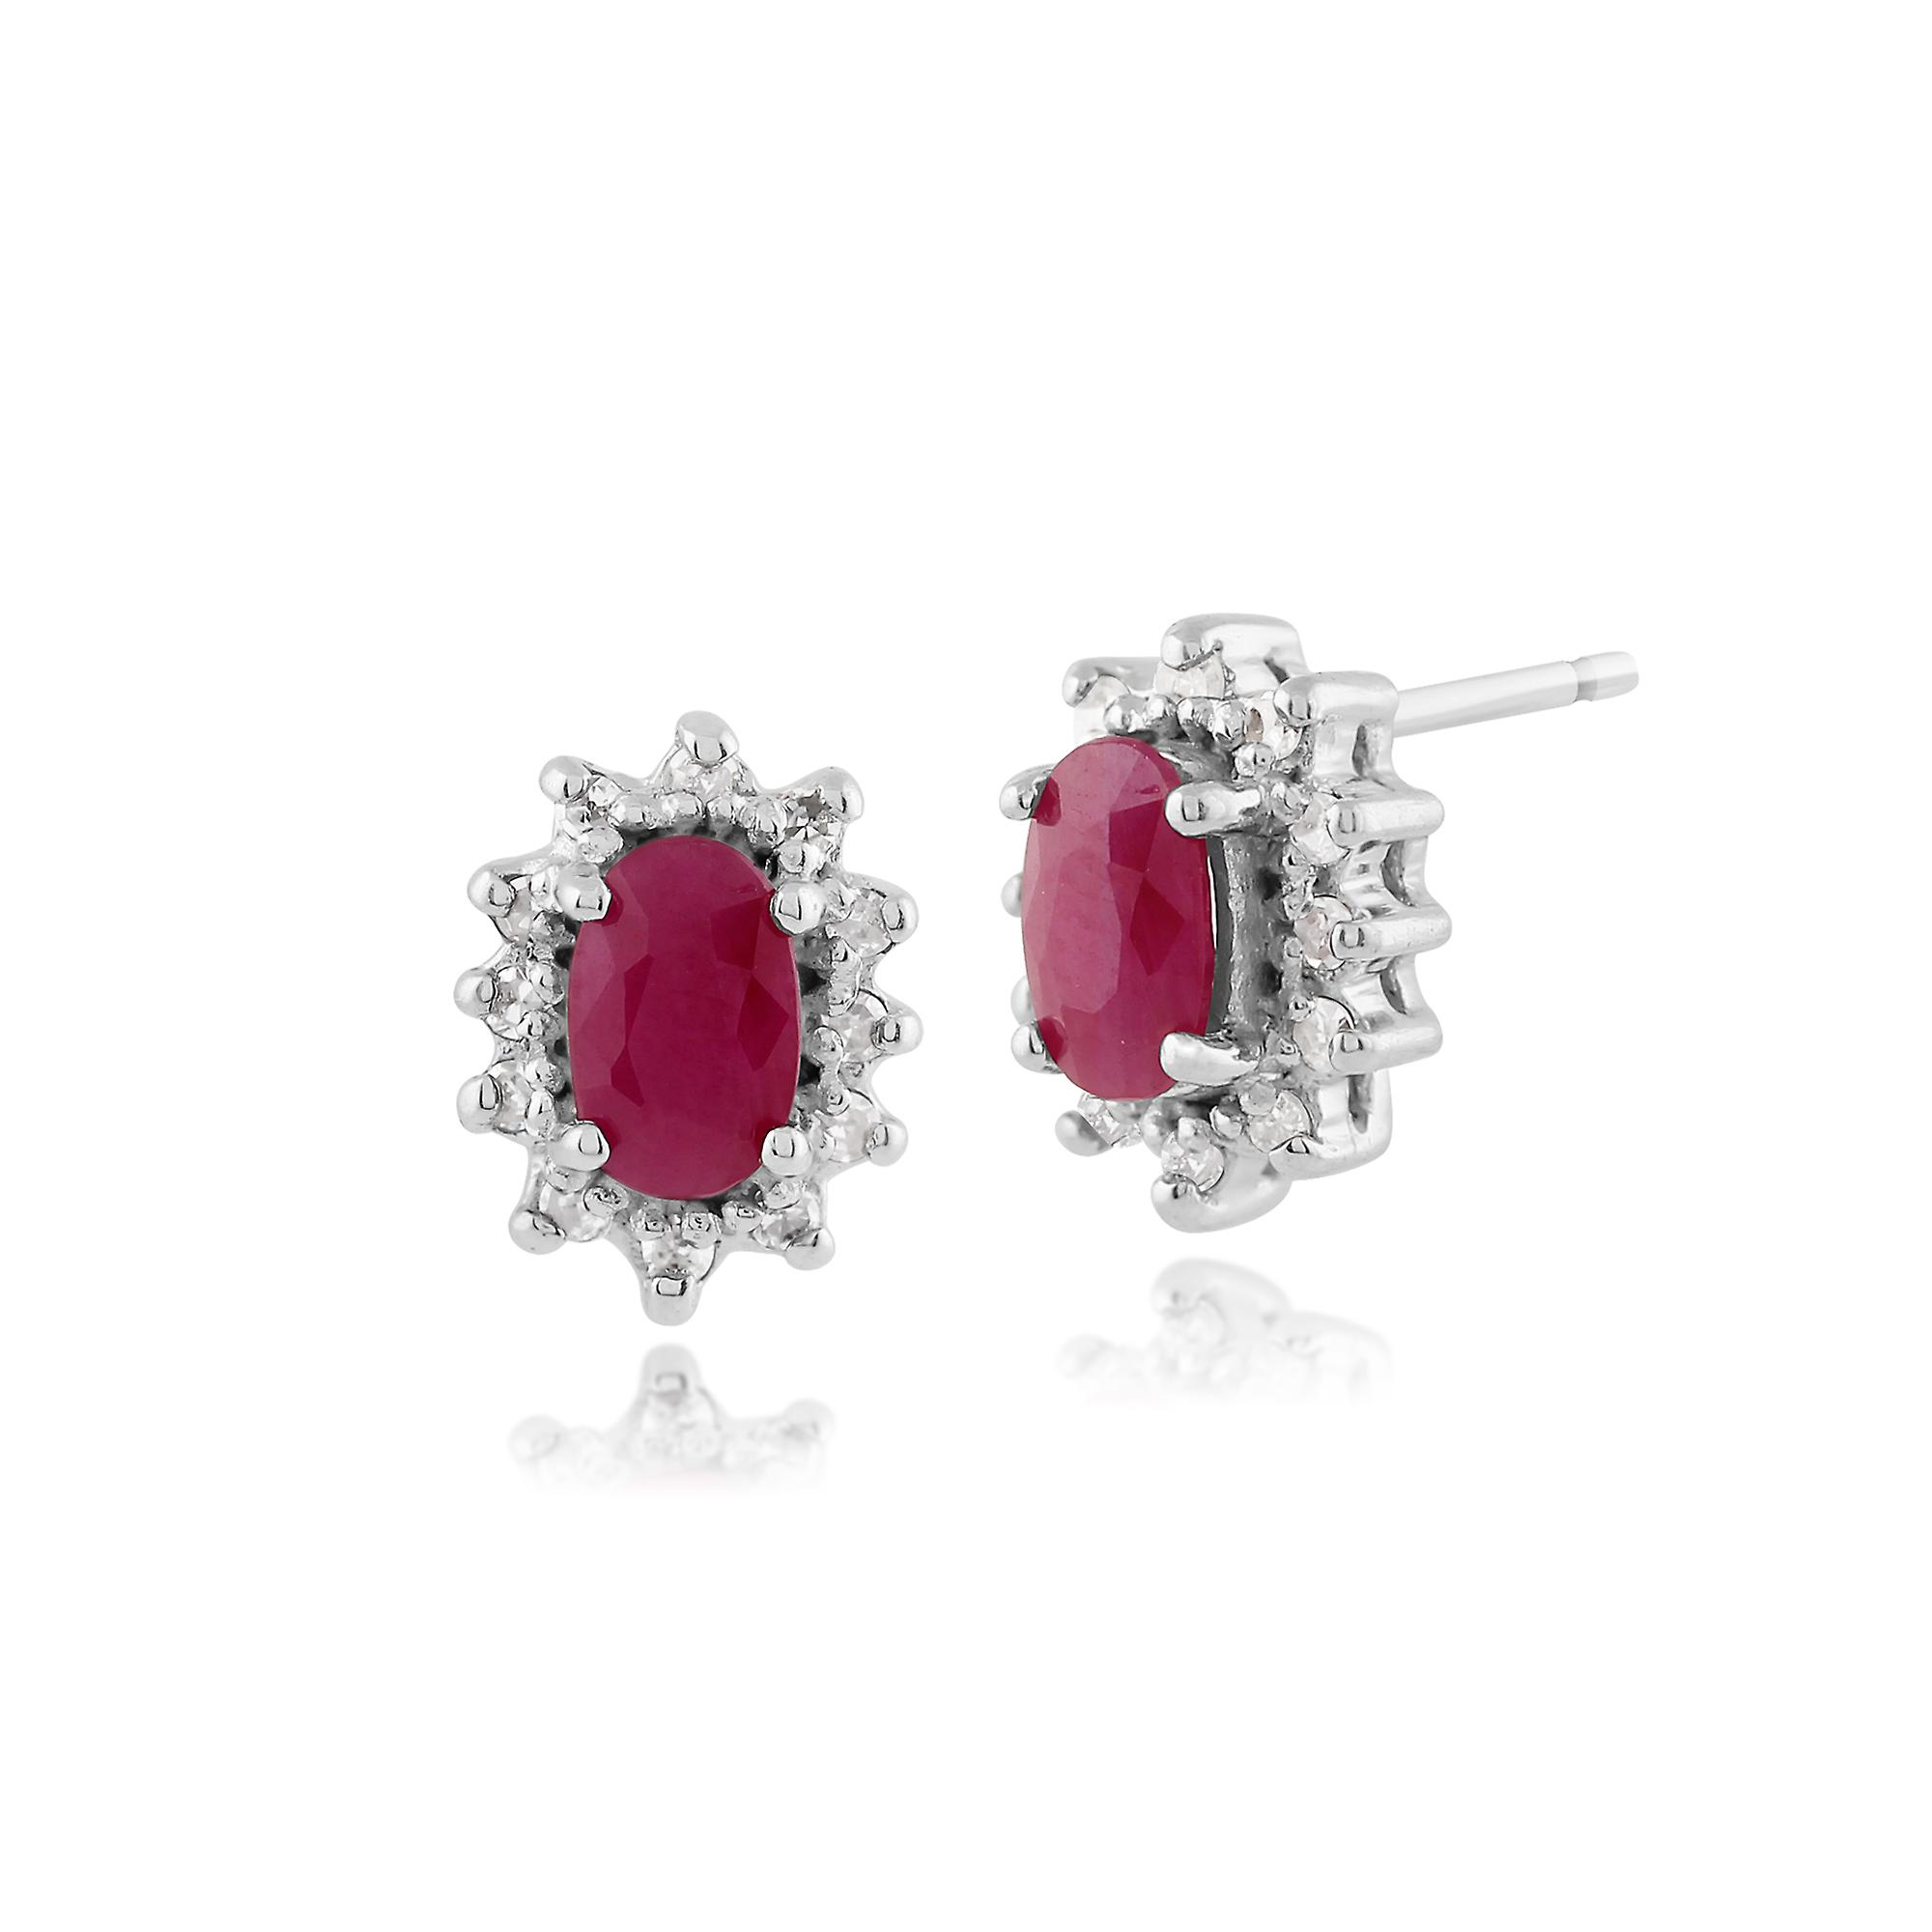 9ct White Gold 0.57ct Natural Ruby & Diamond Cluster Stud Earrings